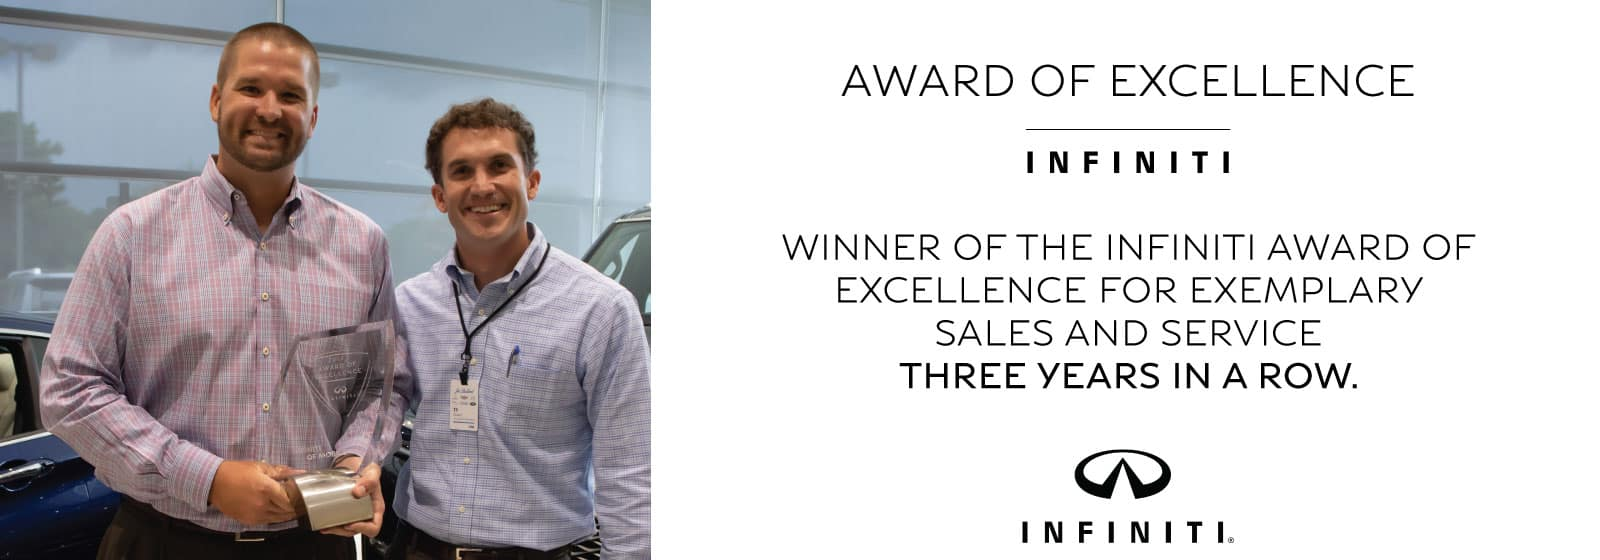 Winner of the INFINITI Award of Excellence for exemplary sales and service three years in a row.